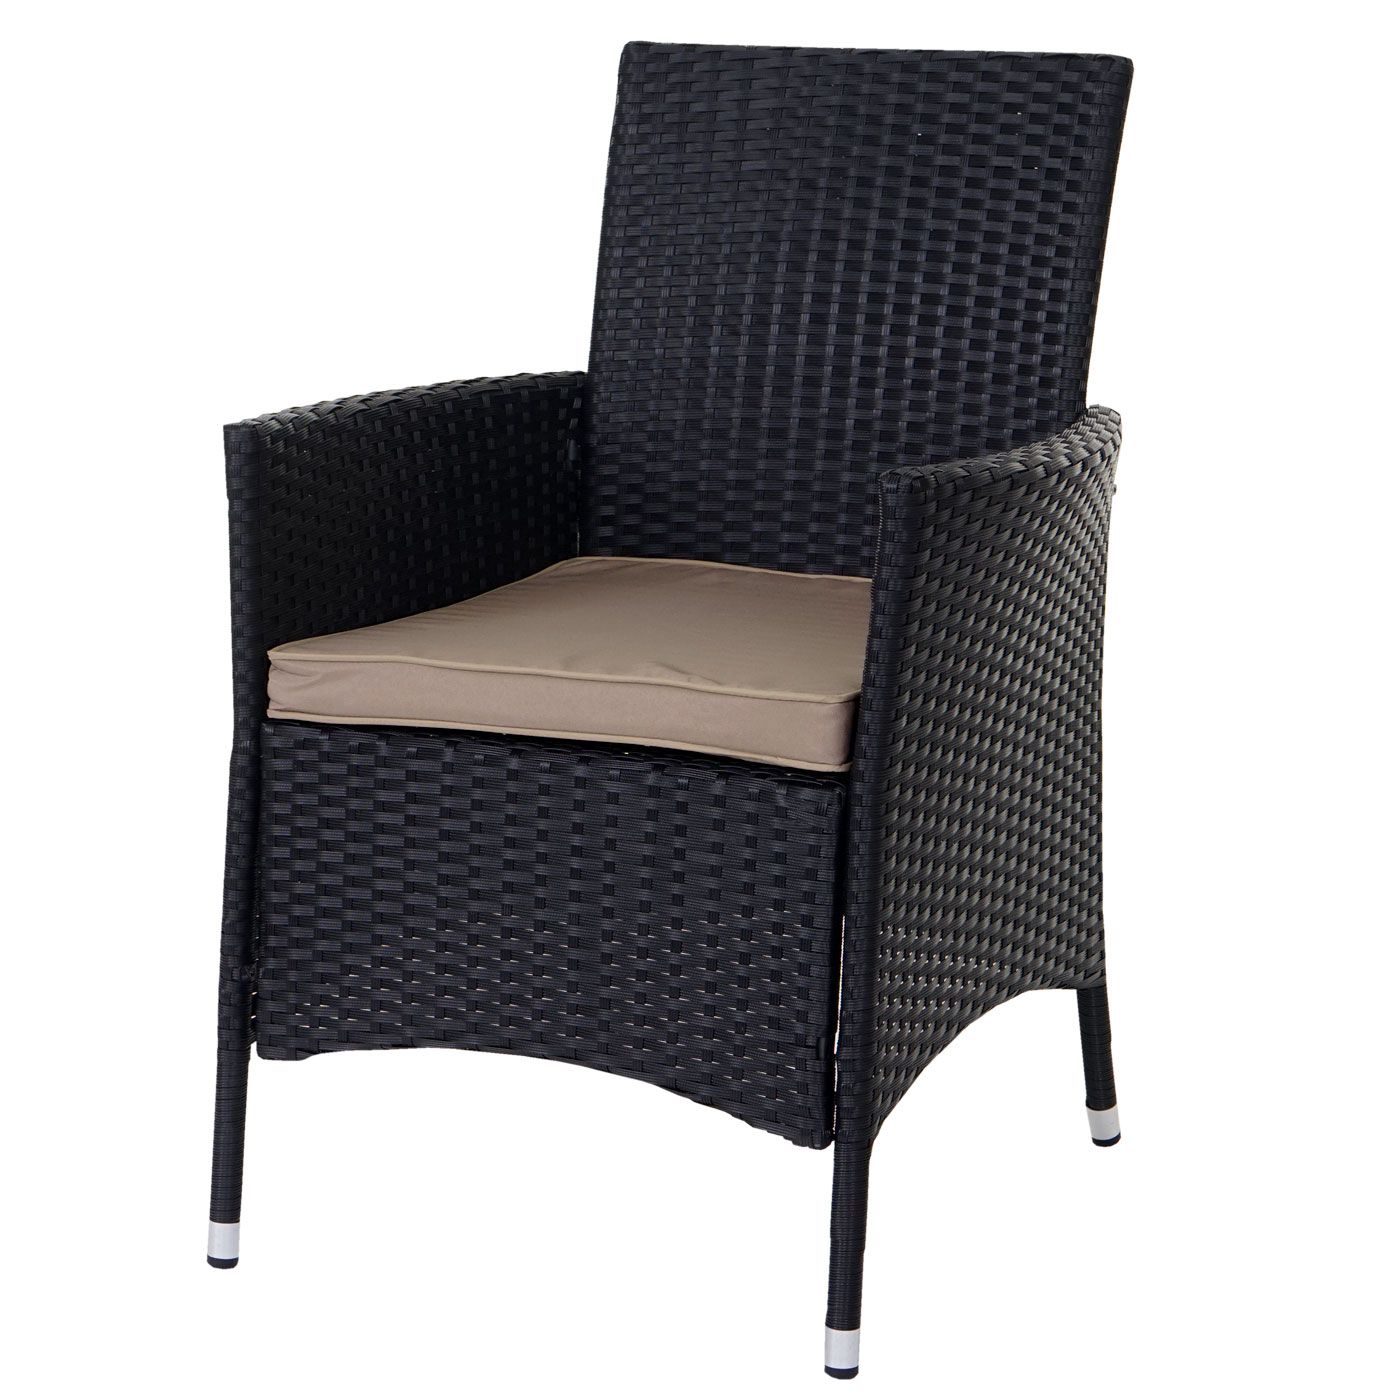 poly rattan garnitur torre garten sitzgruppe tisch 8. Black Bedroom Furniture Sets. Home Design Ideas